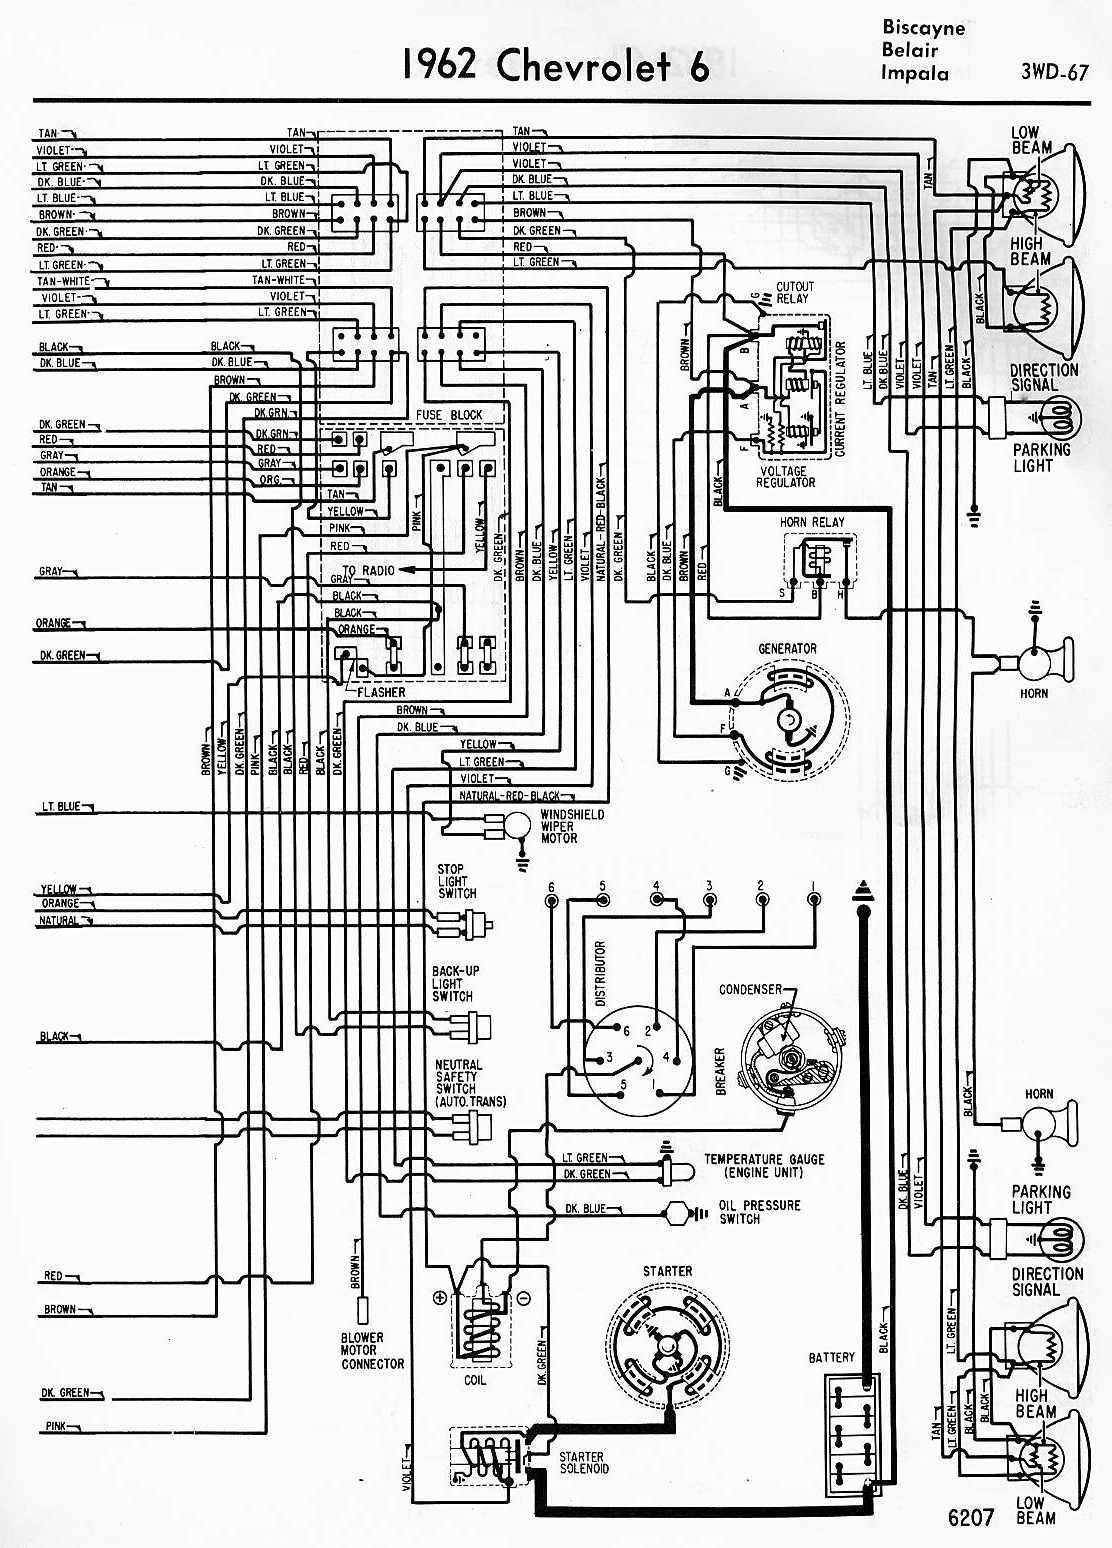 2011 gm truck radio wiring wiring diagram 1962 Impala Wiring Diagram Light 1966 gm radio wiring wiring diagram library